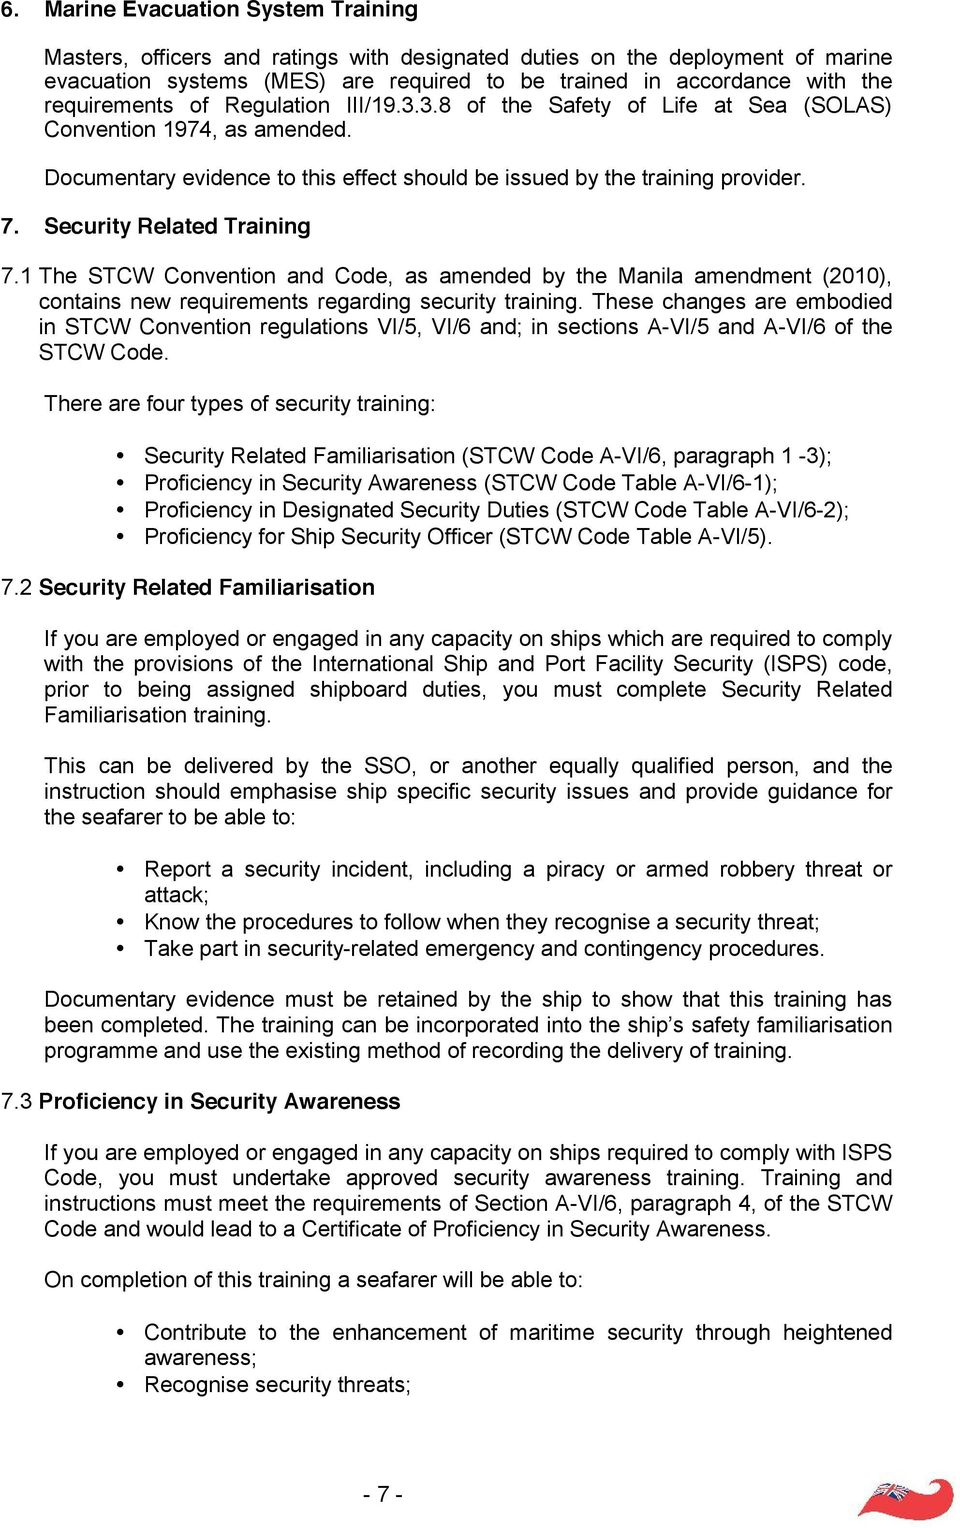 Security Related Training 7.1 The STCW Convention and Code, as amended by the Manila amendment (2010), contains new requirements regarding security training.